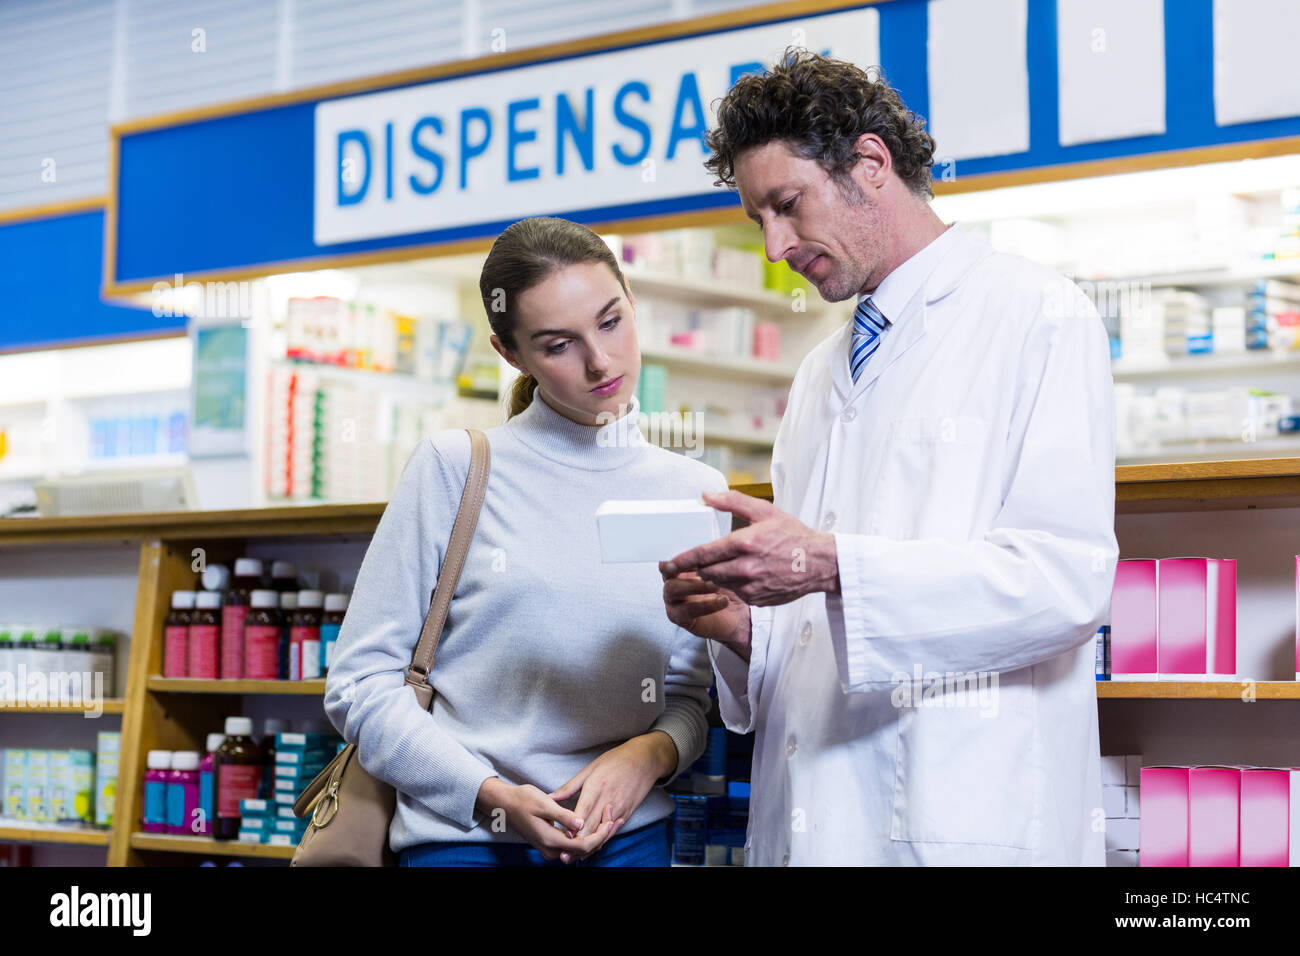 Pharmacist assisting the medicine to customer - Stock Image